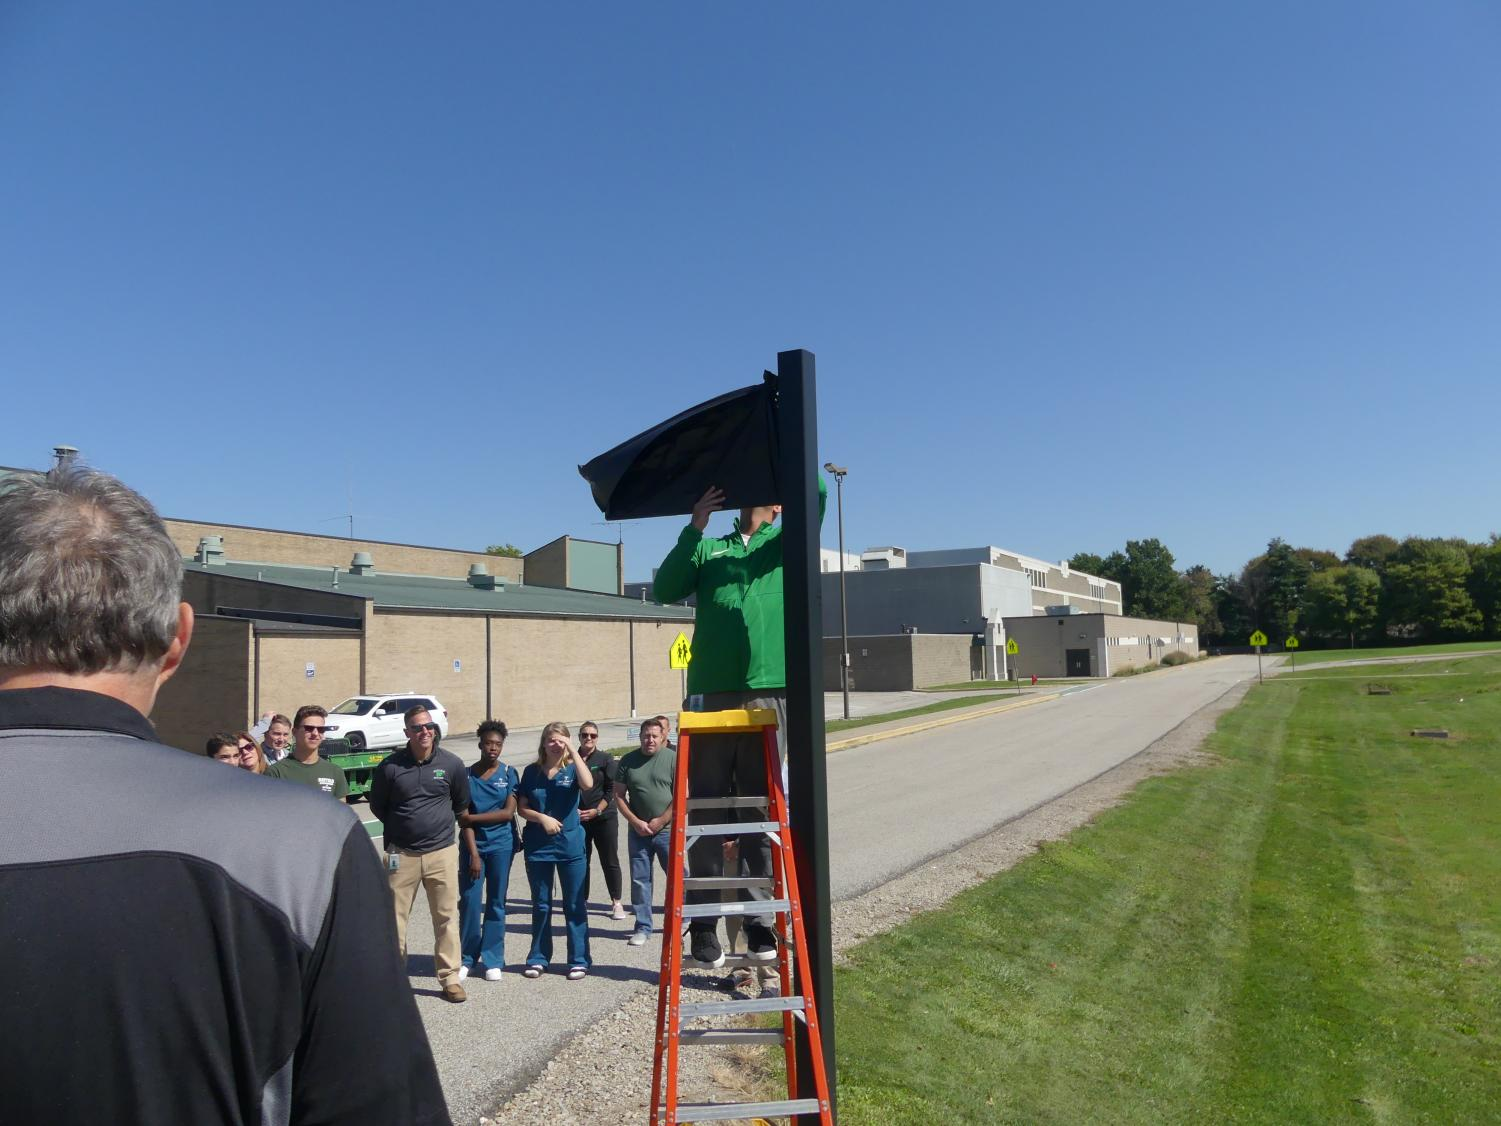 Athletic director Keith Leffler removes the cover from the new Stevie street sign behind the school.  Assistant principal Brian Linn, the swim team, and other members of the community were there for the reveal as well.